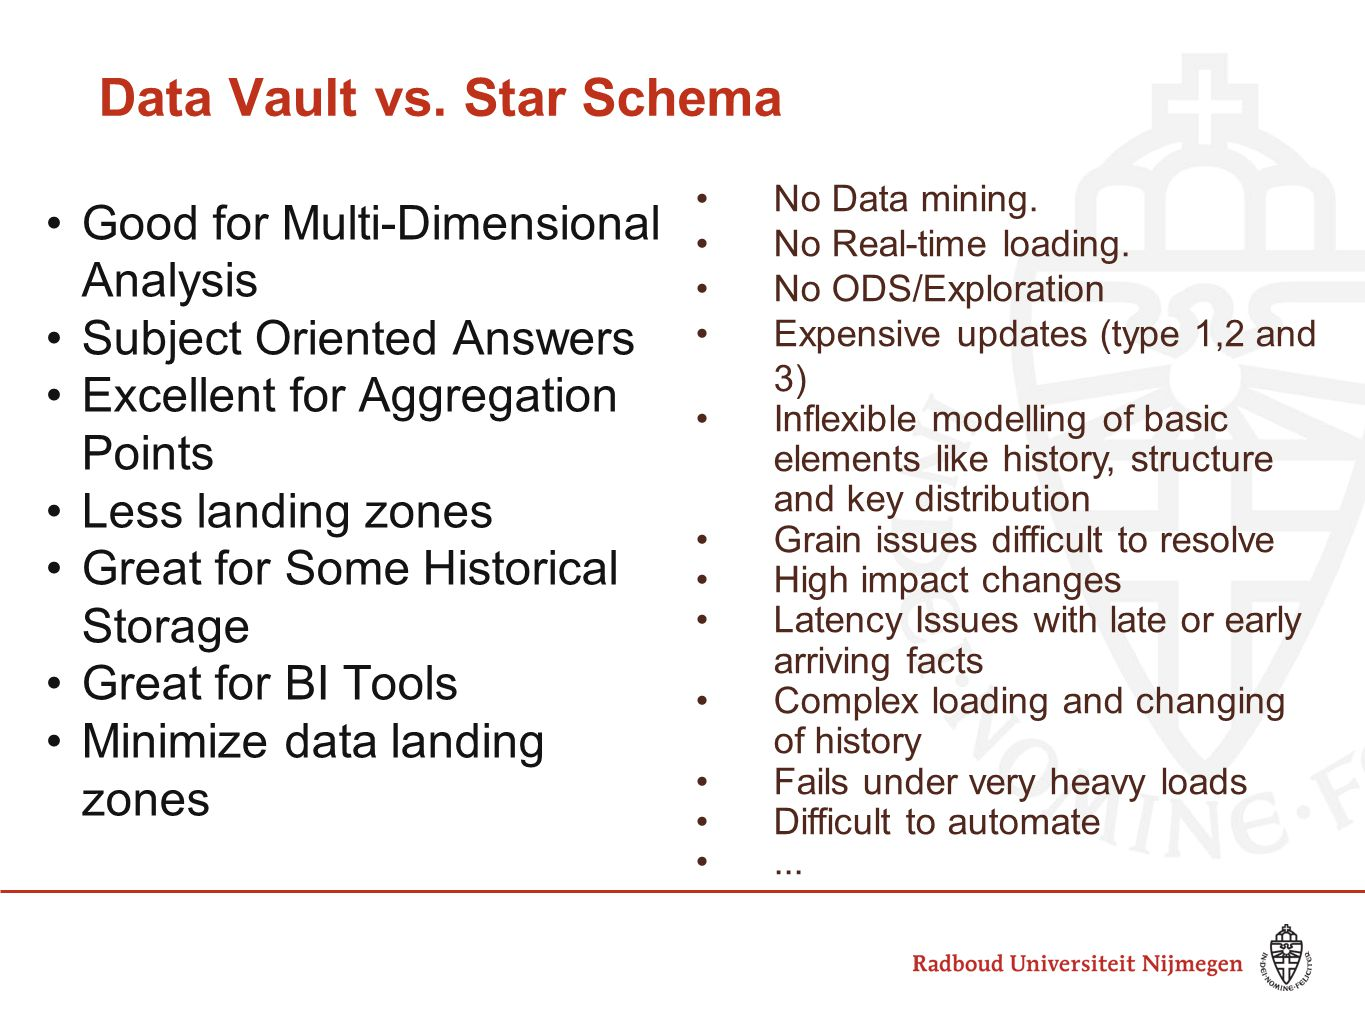 Data Vault vs. Star Schema Good for Multi-Dimensional Analysis Subject Oriented Answers Excellent for Aggregation Points Less landing zones Great for